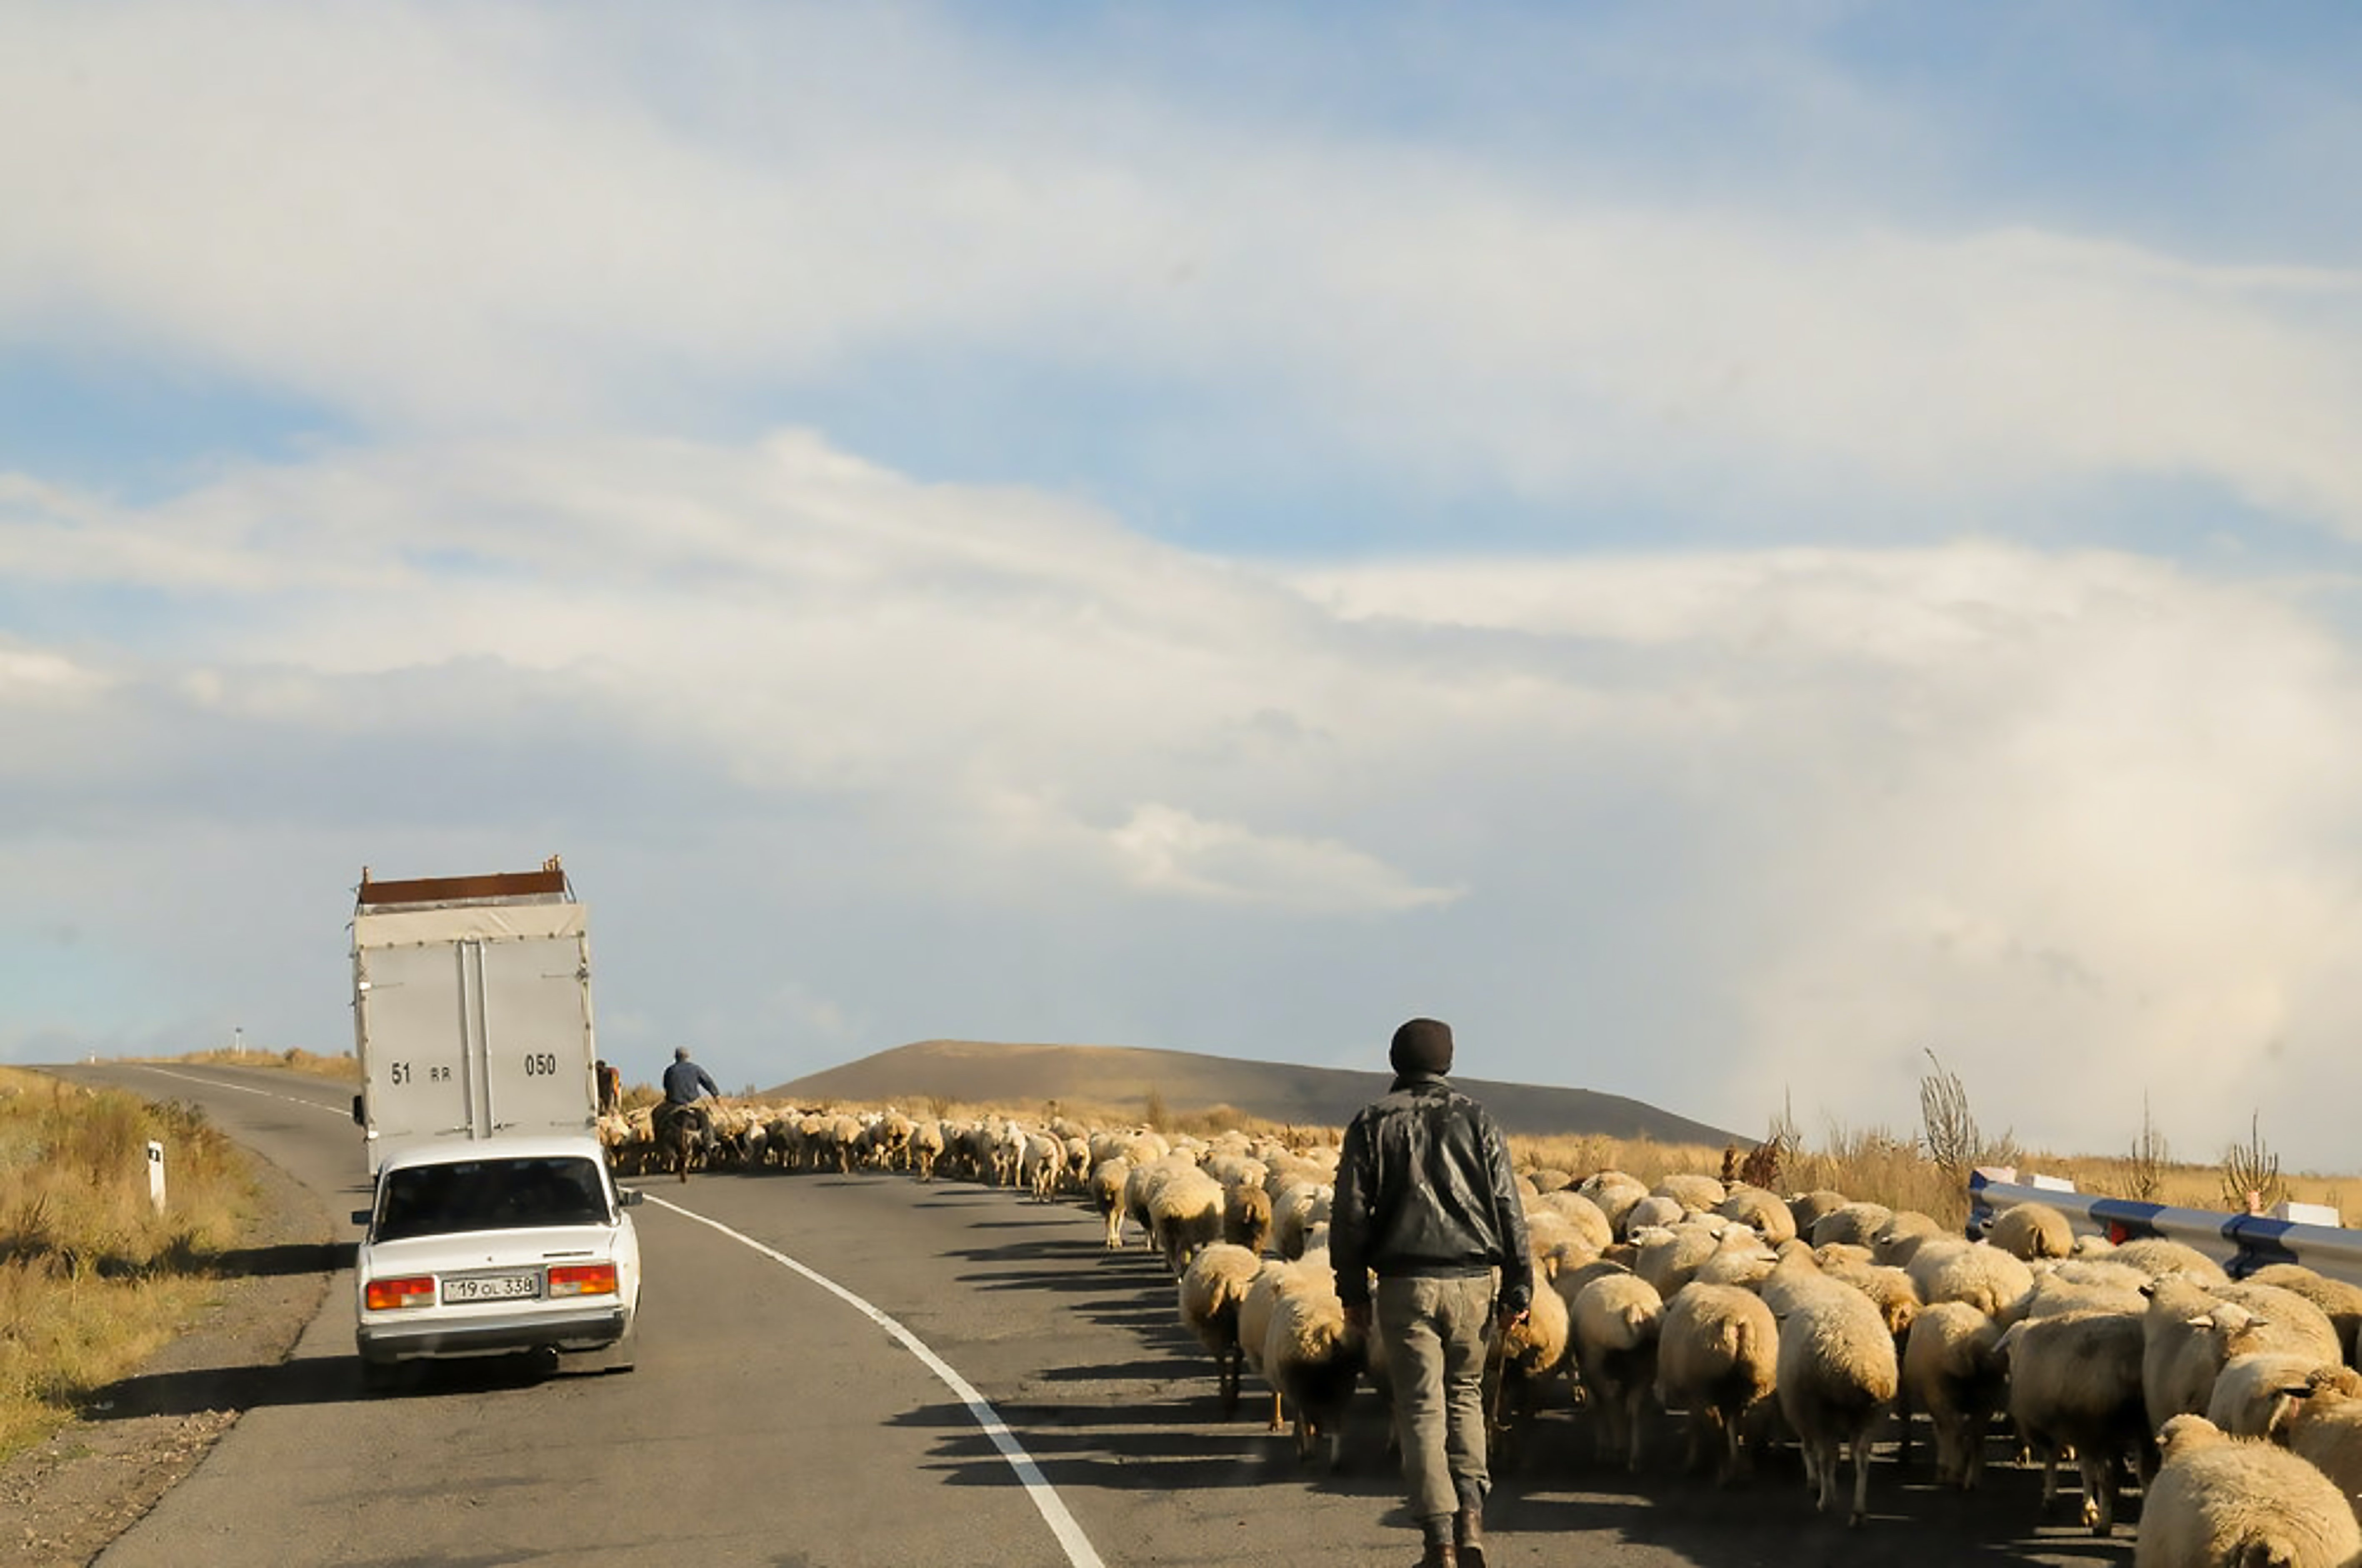 man walking on gray asphalt road with sheep near the white vehicle under the white clouds during daytime